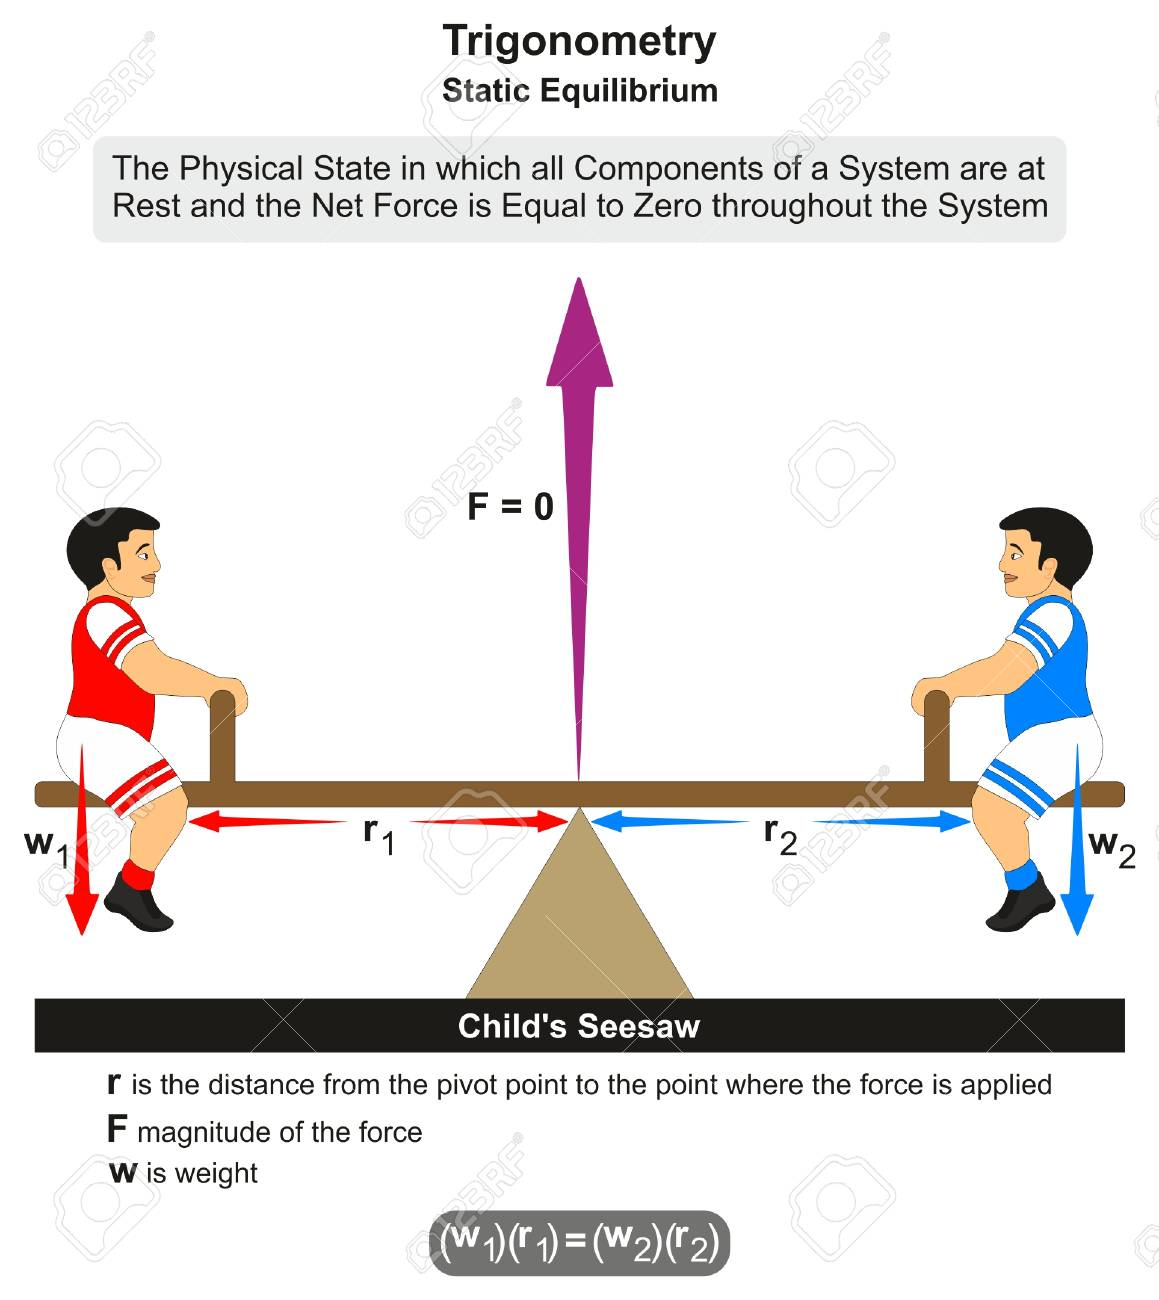 Trigonometry Static Equilibrium Infographic Diagram With Fulcrum